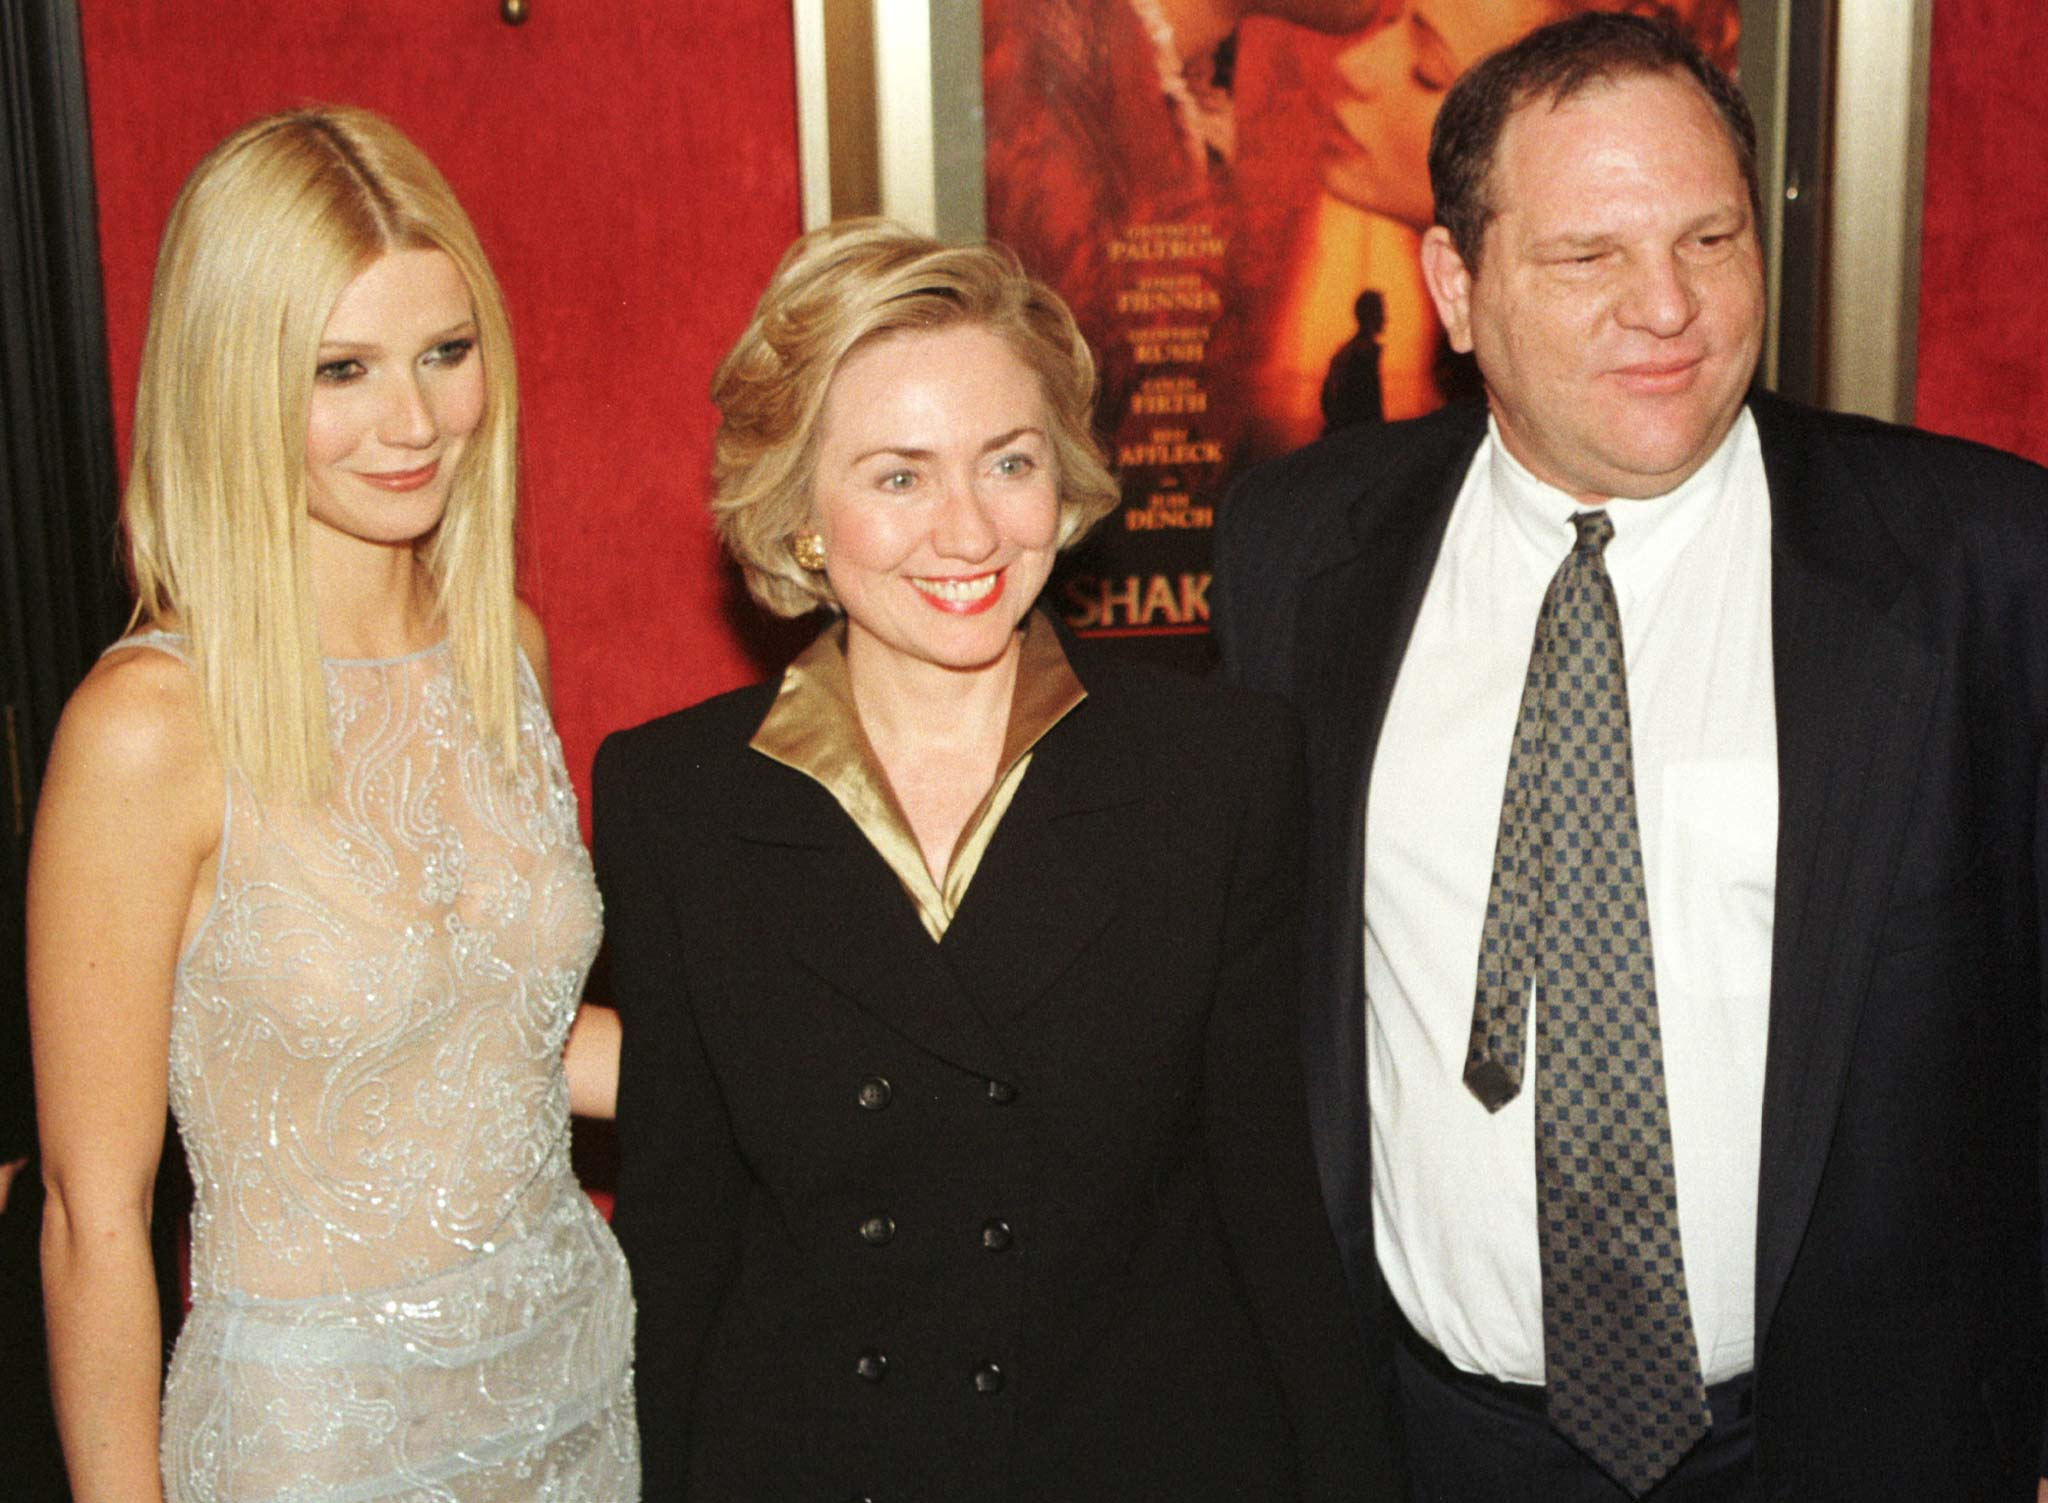 "Actress Gwyneth Paltrow (L) poses with first lady Hillary Rodham Clinton (C) and Miramax co-chairman Harvey Weinstein as they arrive for the premiere of ""Shakespeare in Love"" in New York on December 3. Clinton introduced the film, which stars Paltrow, Joseph Fiennes, and Geoffrey Rush. It opens in New York and Los Angeles on December 11 and nationally on Christmas Day.  PM/ELD - RP1DRIFRNPAG"